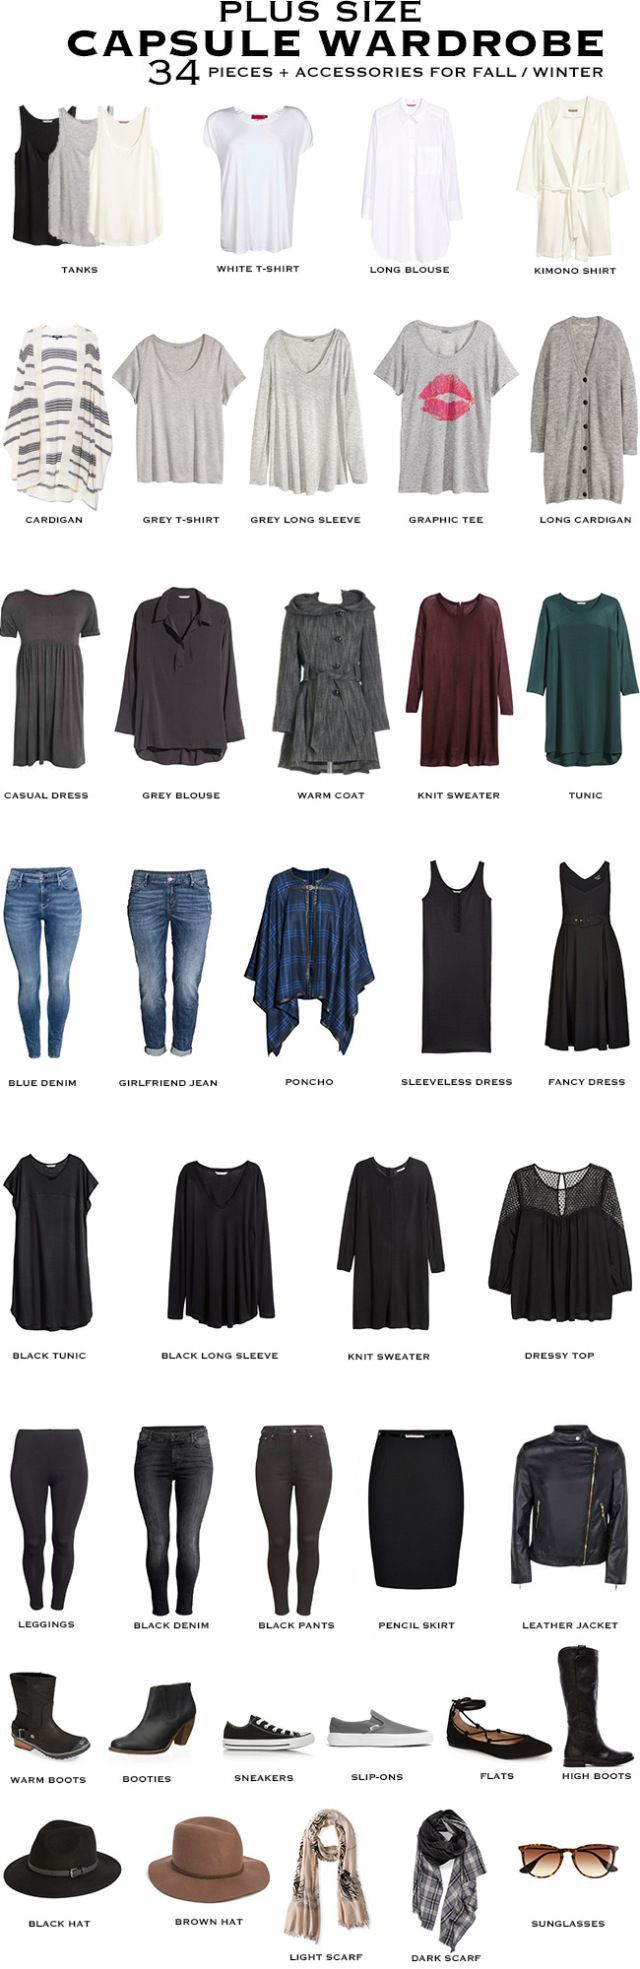 plus size minimal fashion outfits and wardrobe ideas